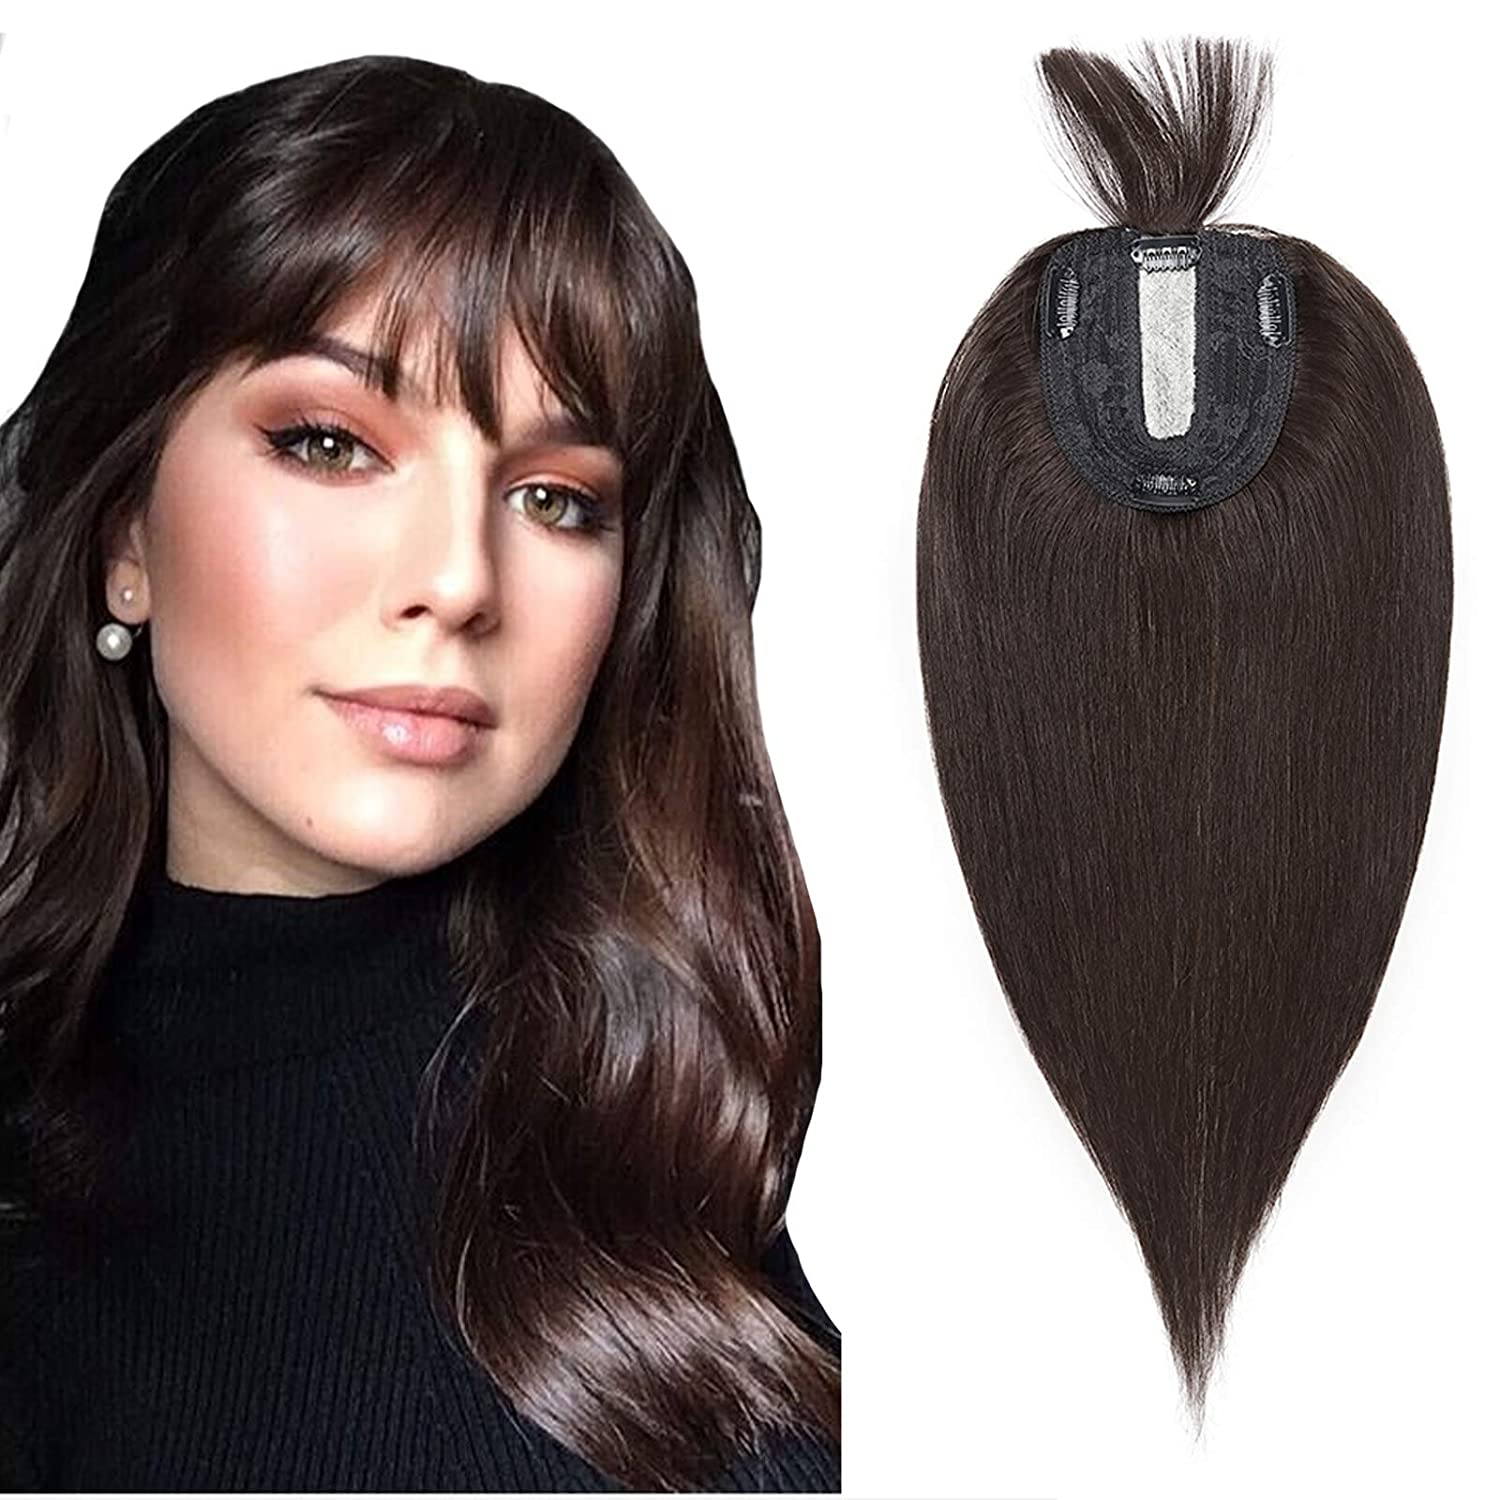 Hair Toppers shopping With Bangs Milwaukee Mall Human Clip Wome Crown Topper For In